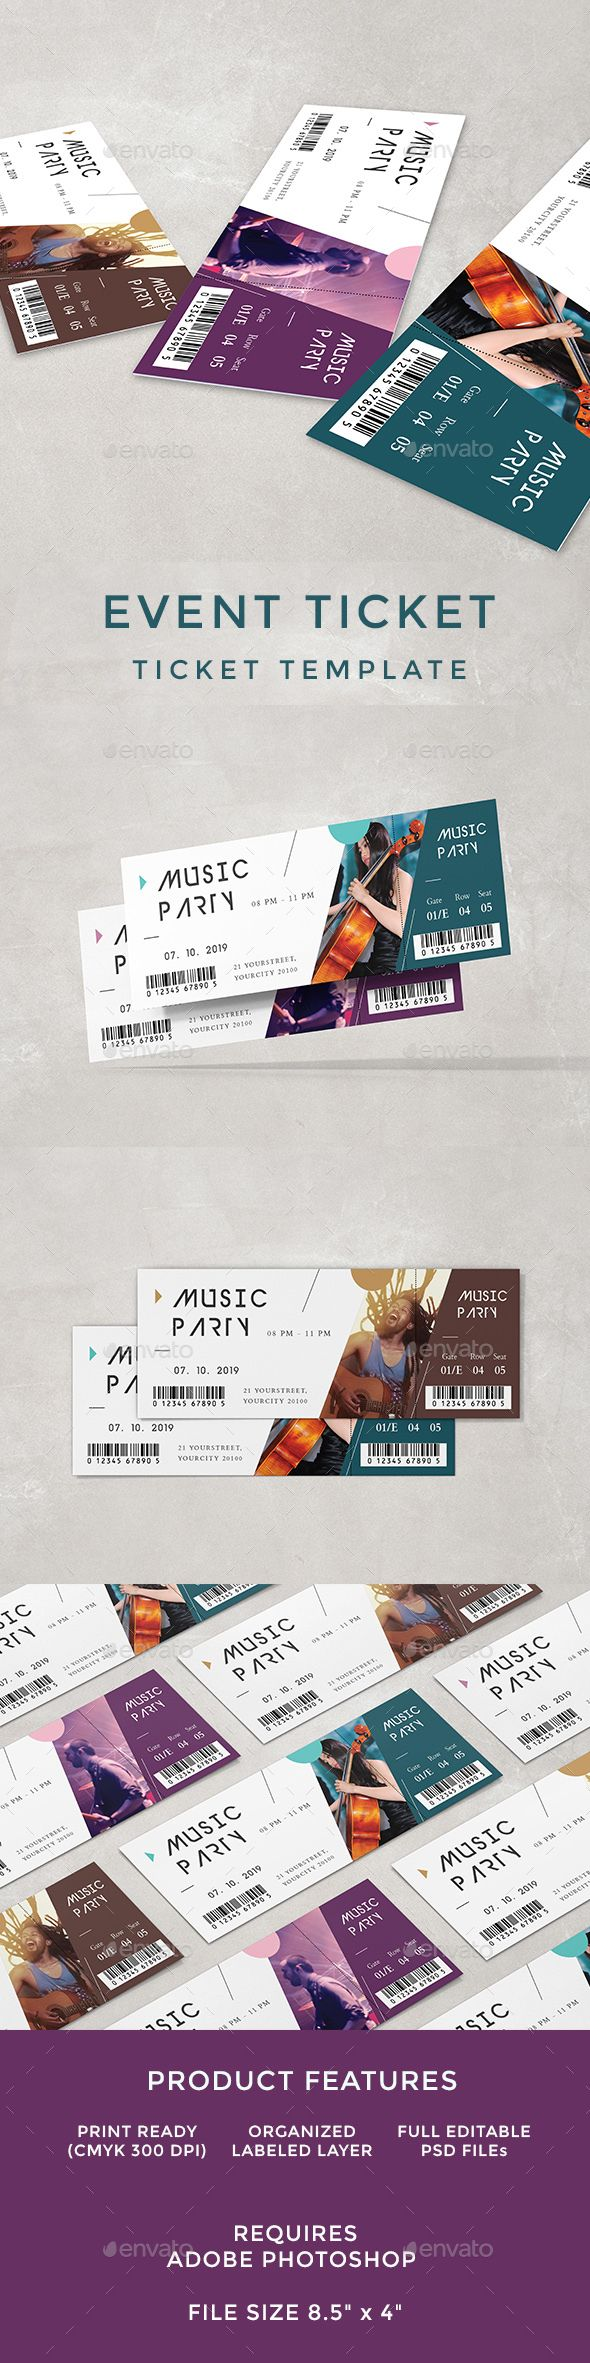 Concert Ticket Template Free Download Unique Event Ticket  Event Ticket Print Templates And Template